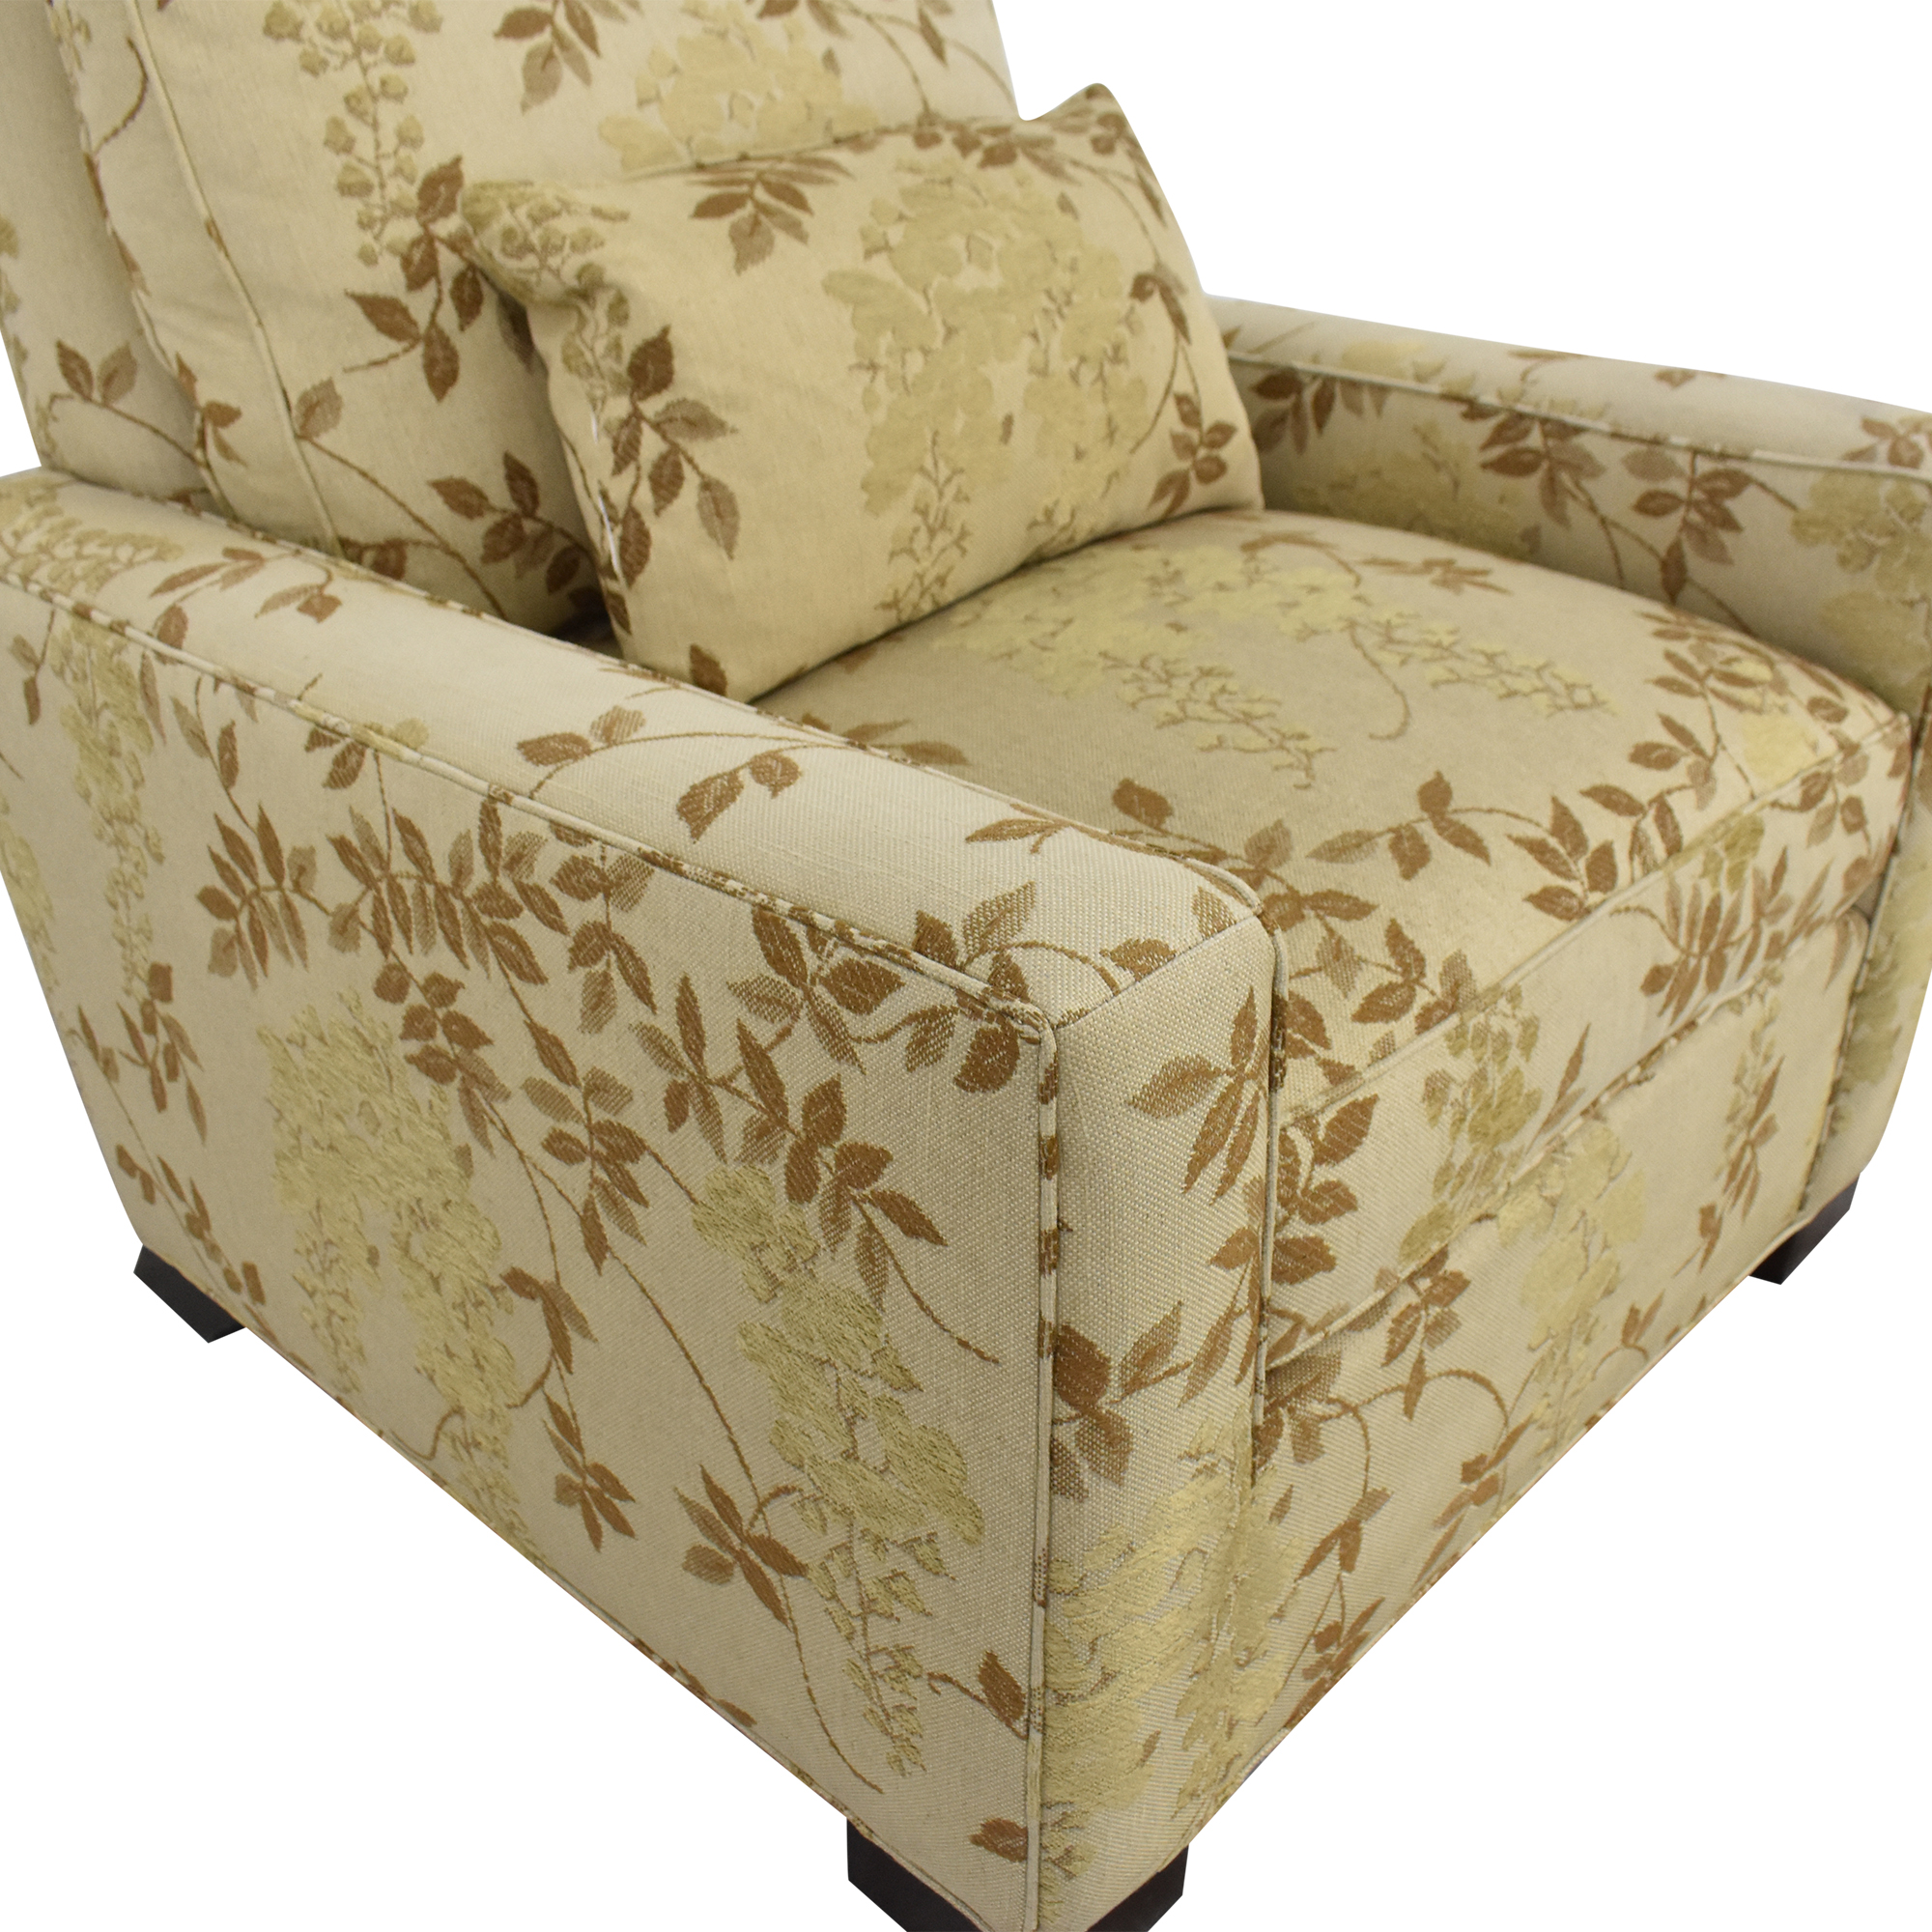 Hickory Chair Hickory Chair Upholstered Club Chair on sale